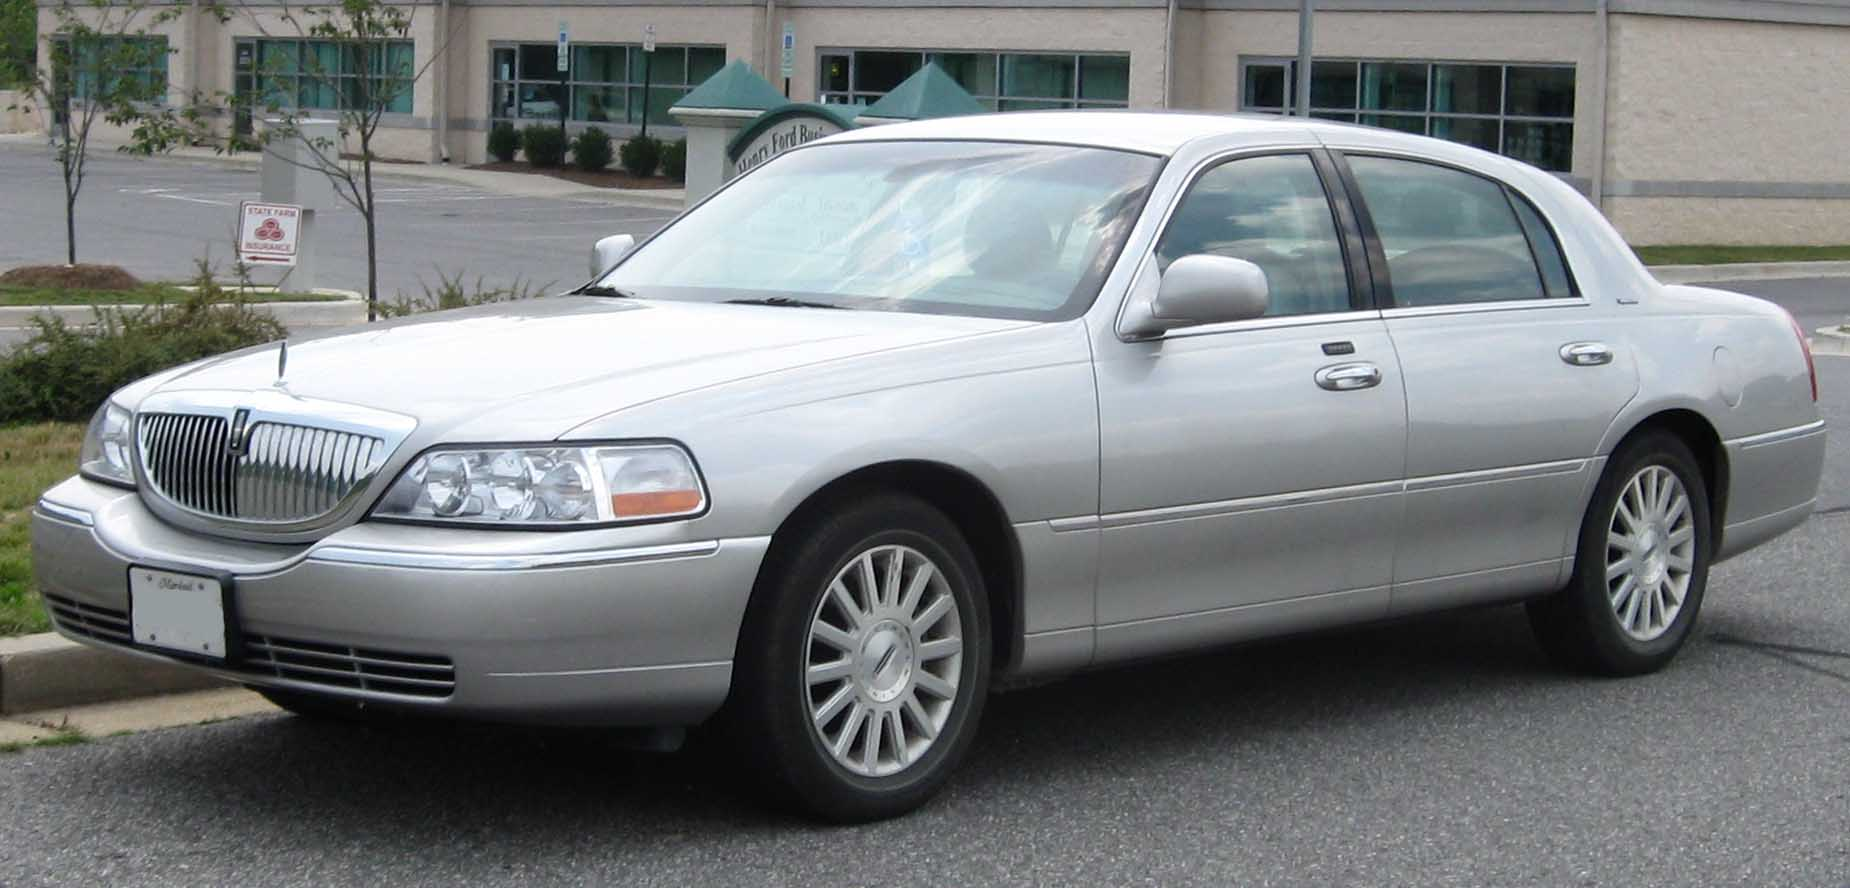 2008 lincoln town car size 103 kb resolution 1850x888 type link file src